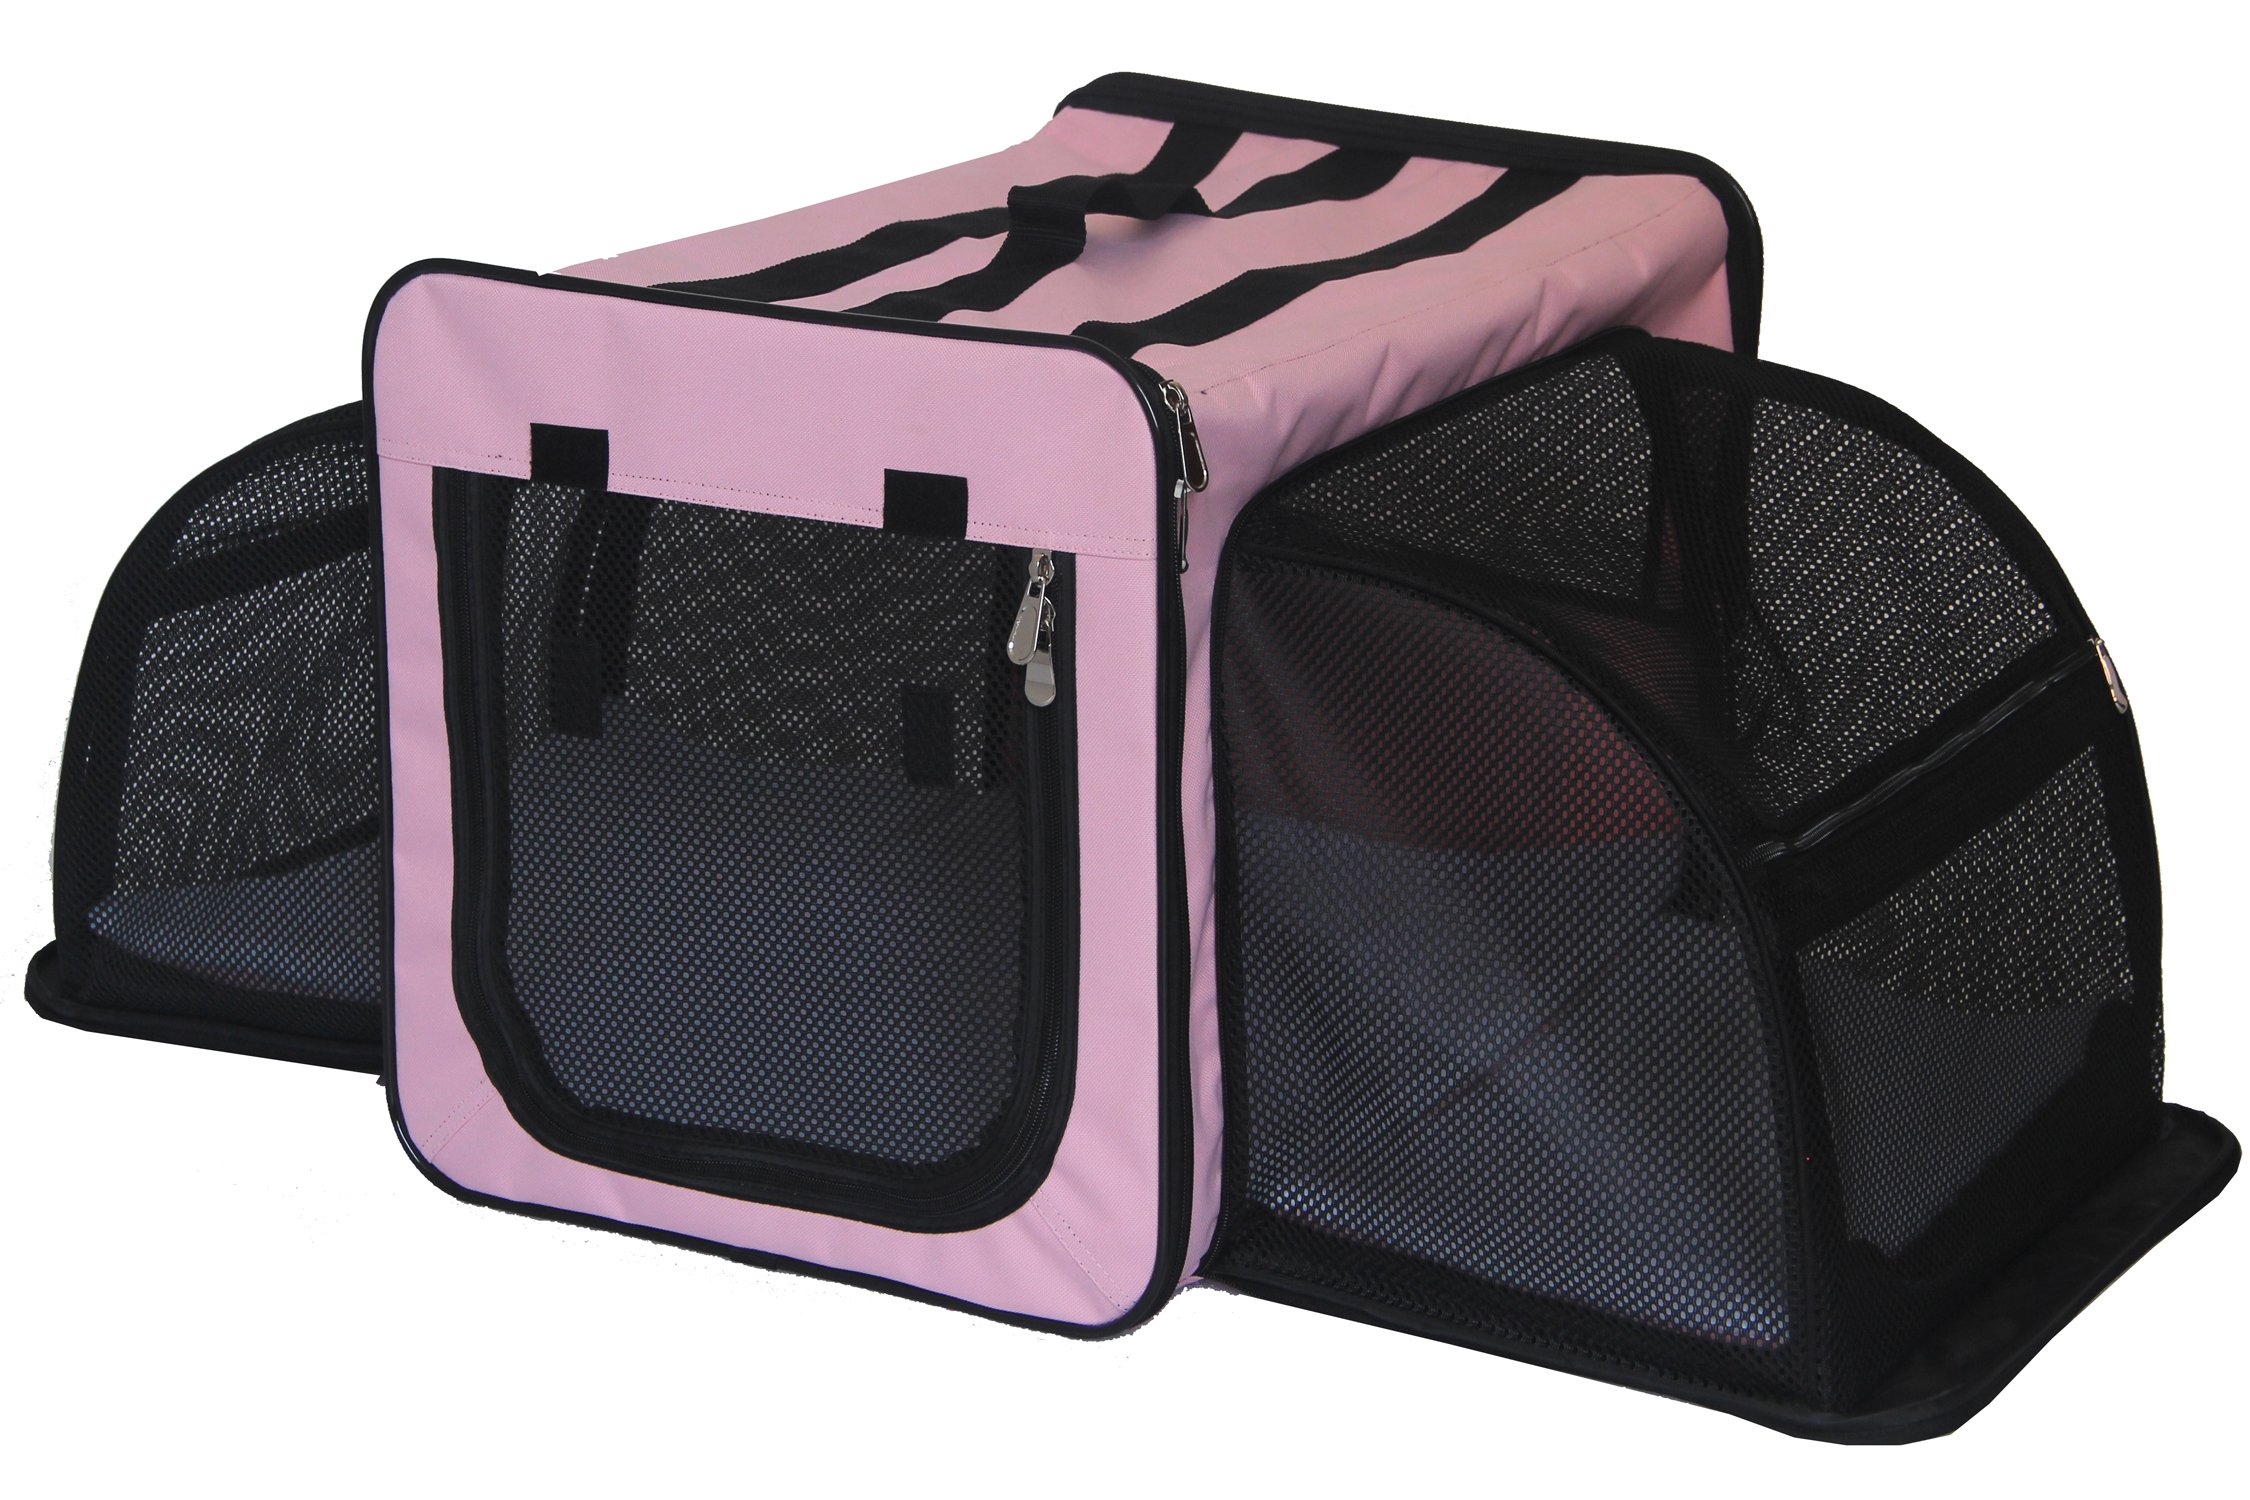 Pet Life Capacious' Dual-Sided Expandable Spacious Wire Folding Collapsible Lightweight Pet Dog Crate Carrier House, Large, Pink